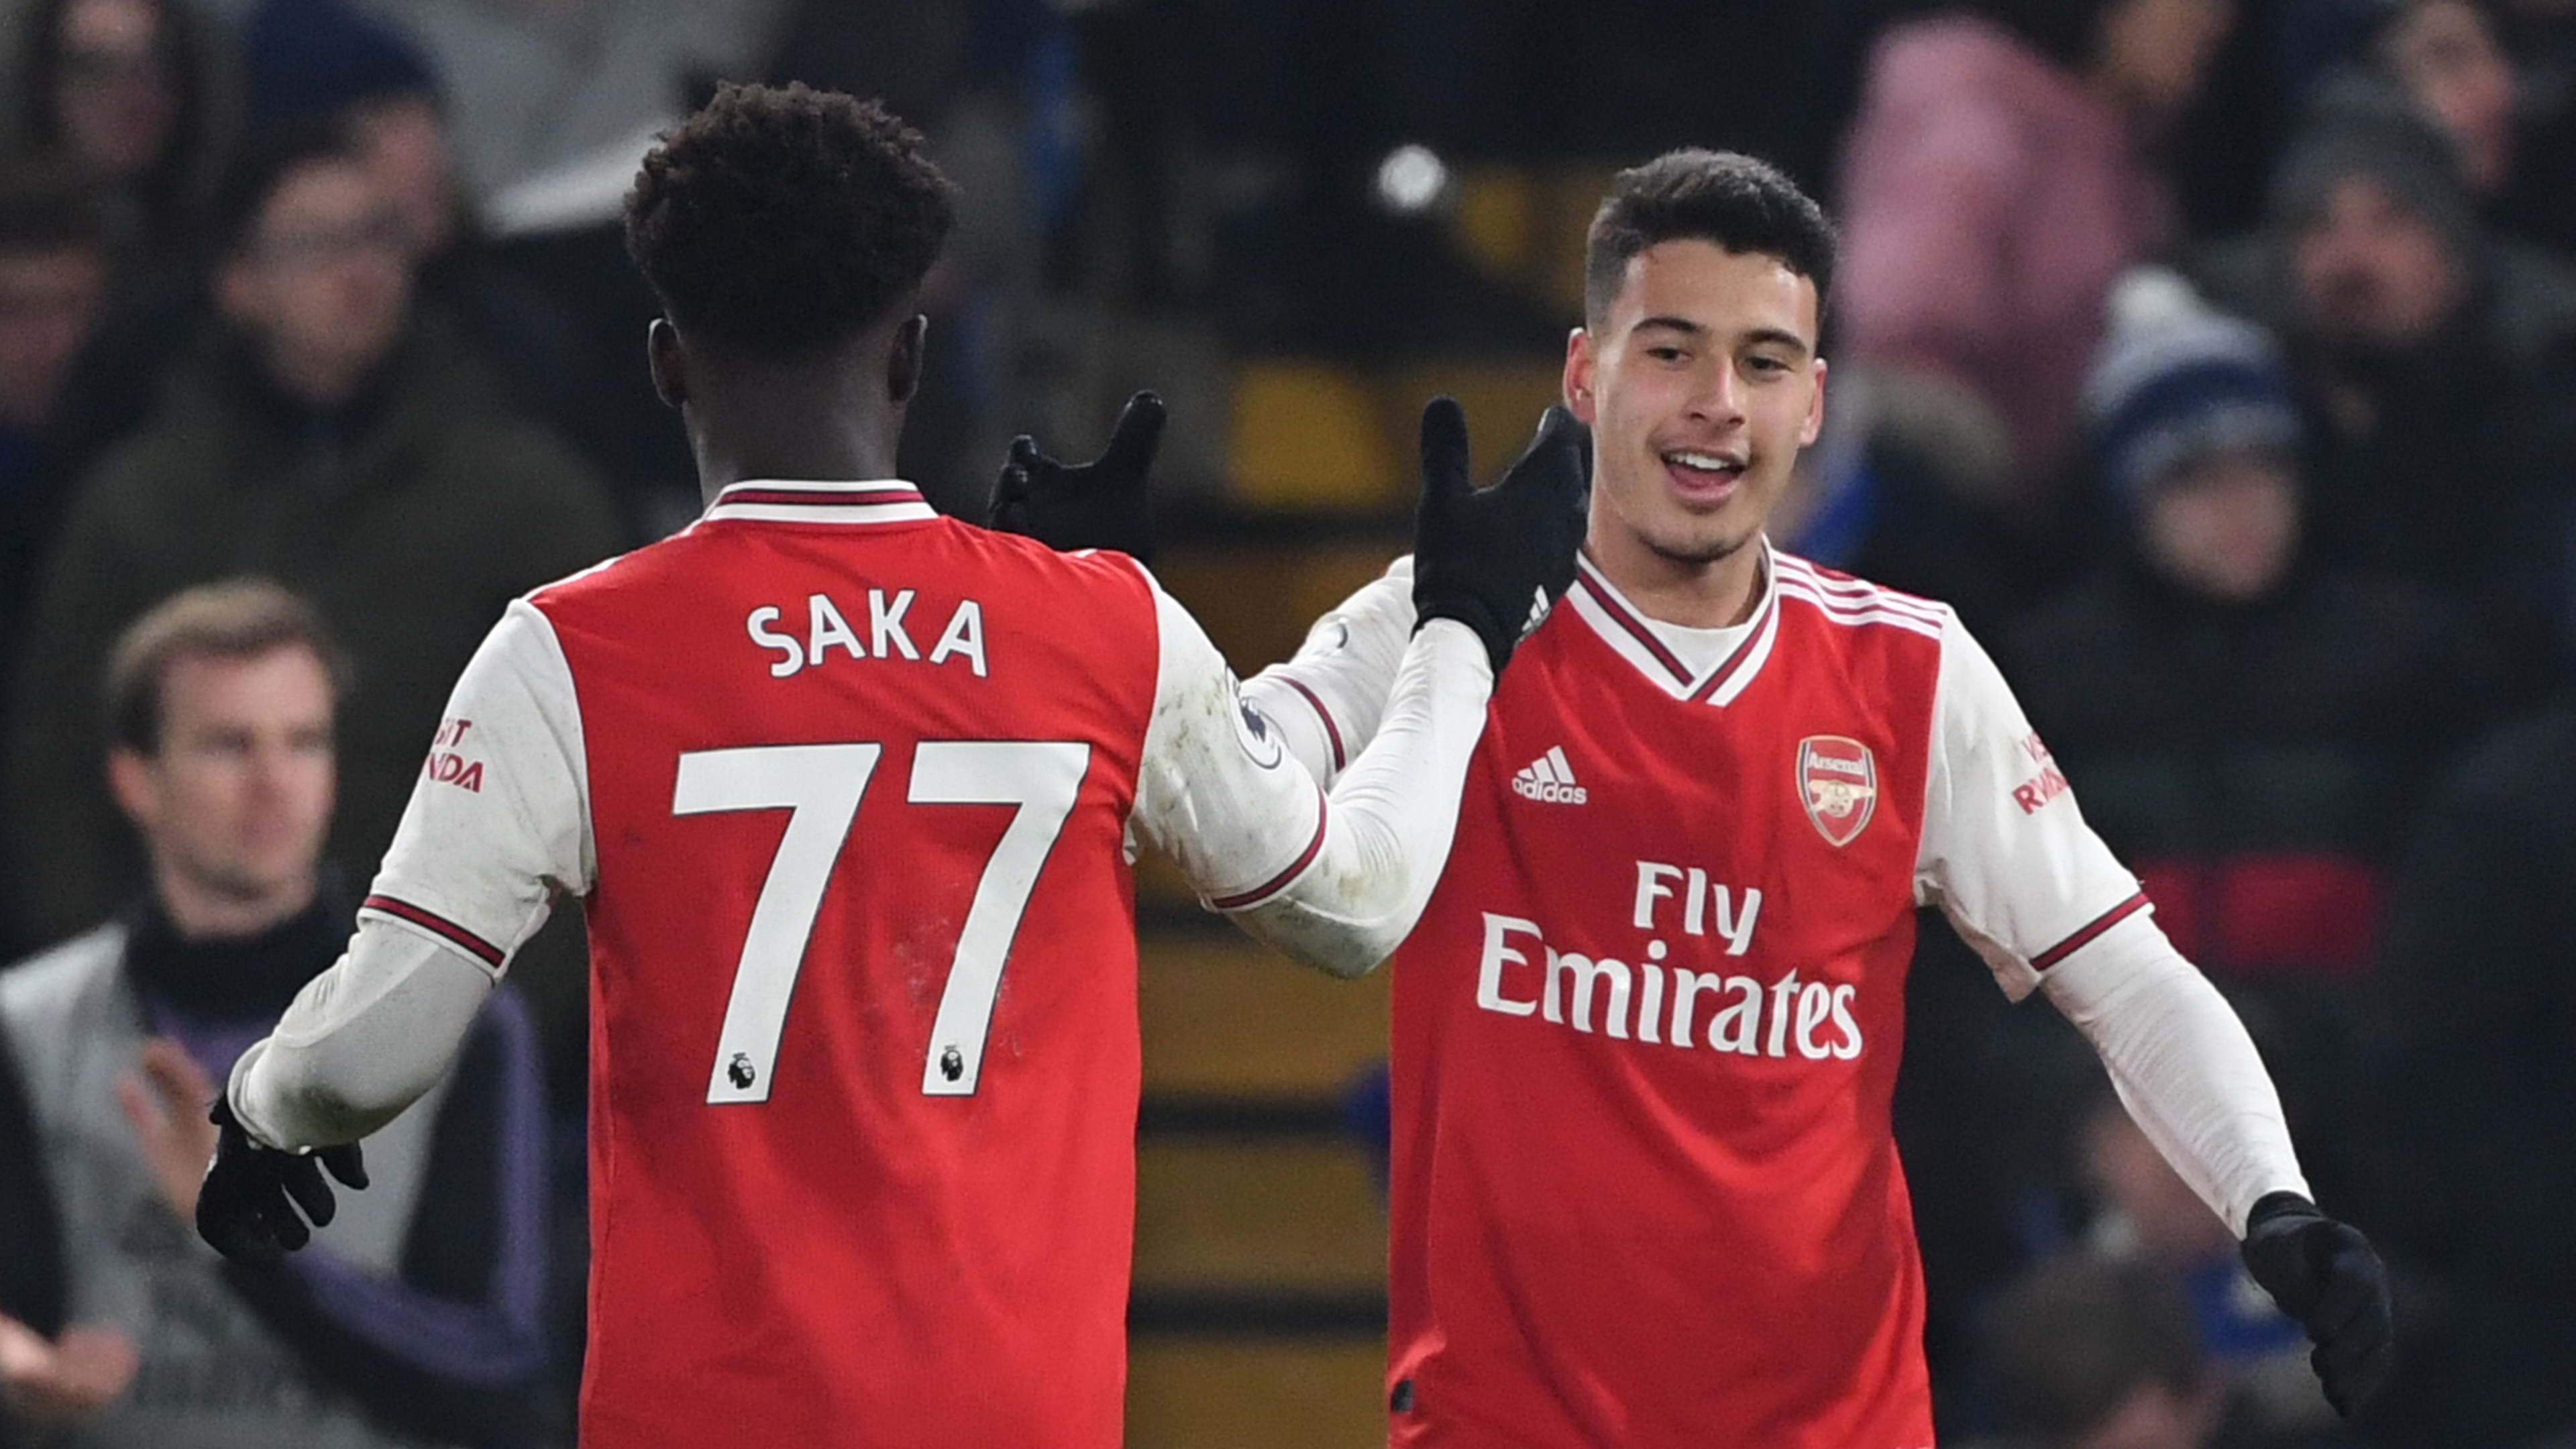 Arteta praises Martinelli's 'courage' after helping Arsenal to Chelsea draw